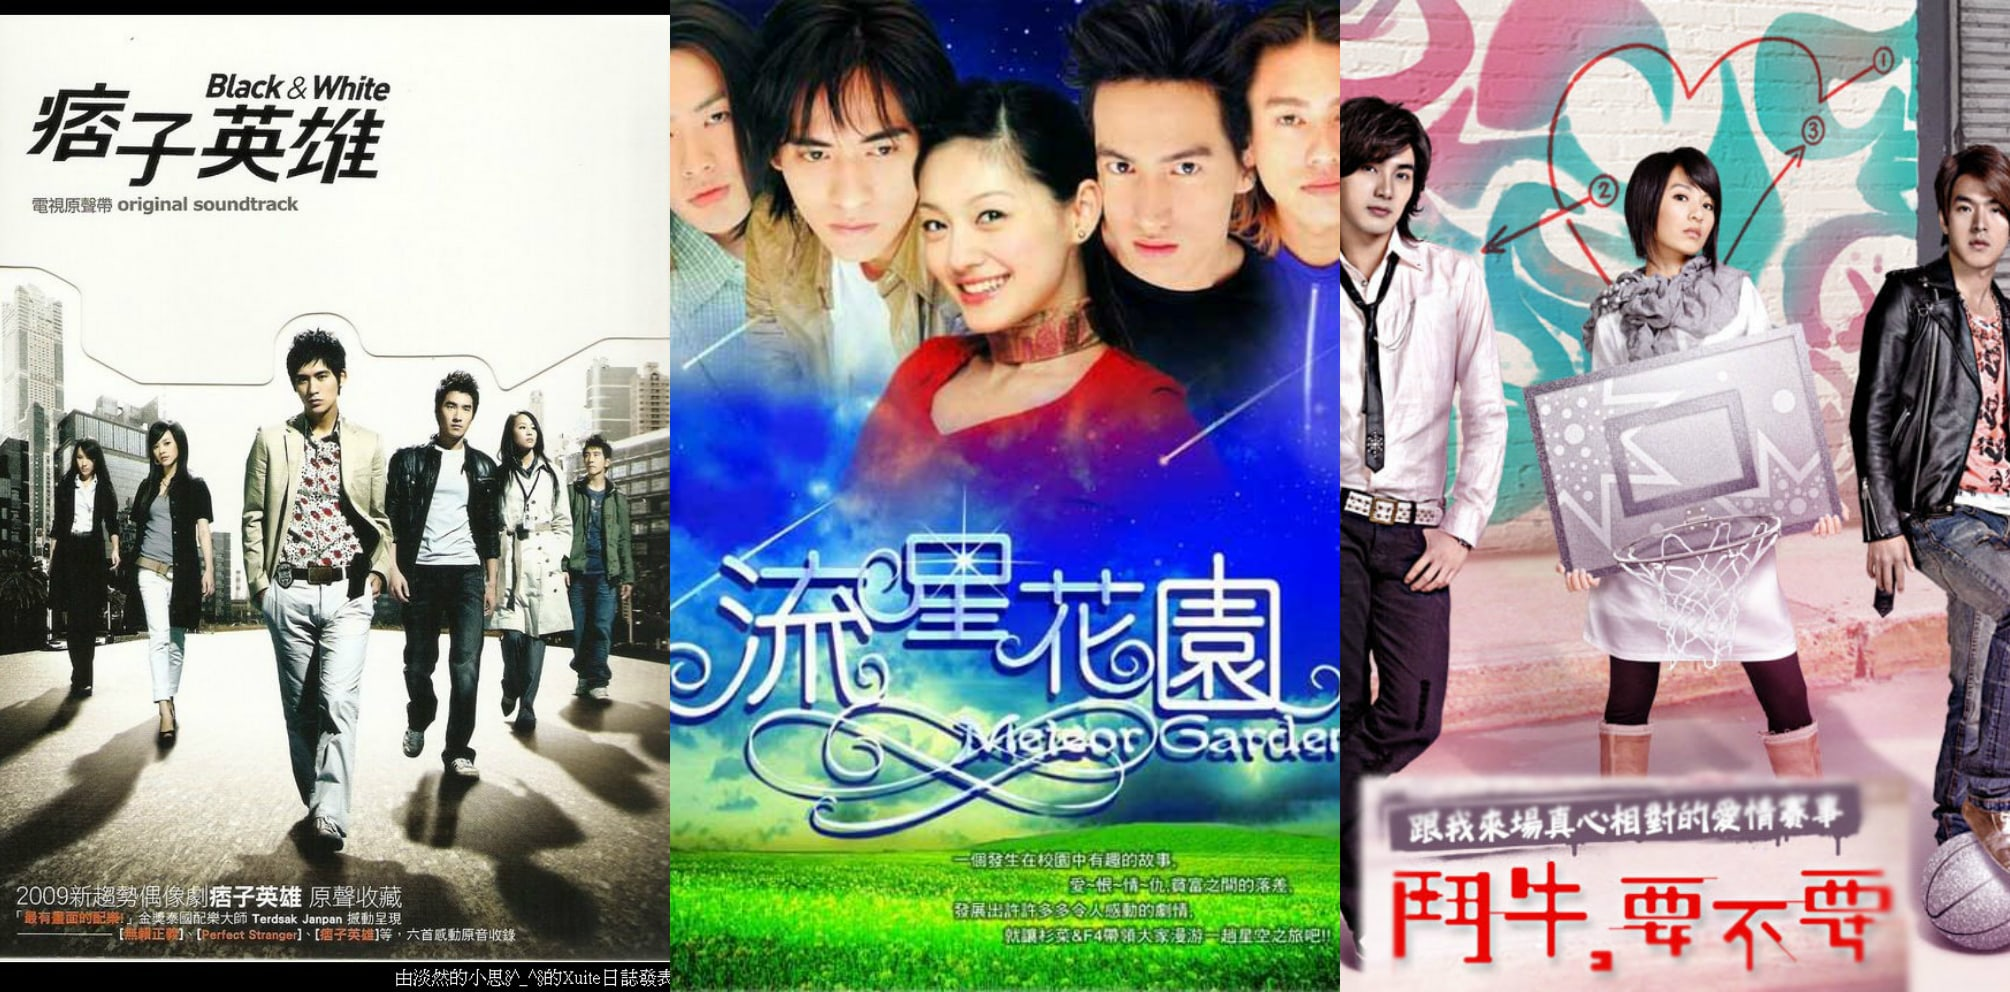 F4, Revenge, And Romance: 9 Upcoming C-Dramas You Won't Want To Miss